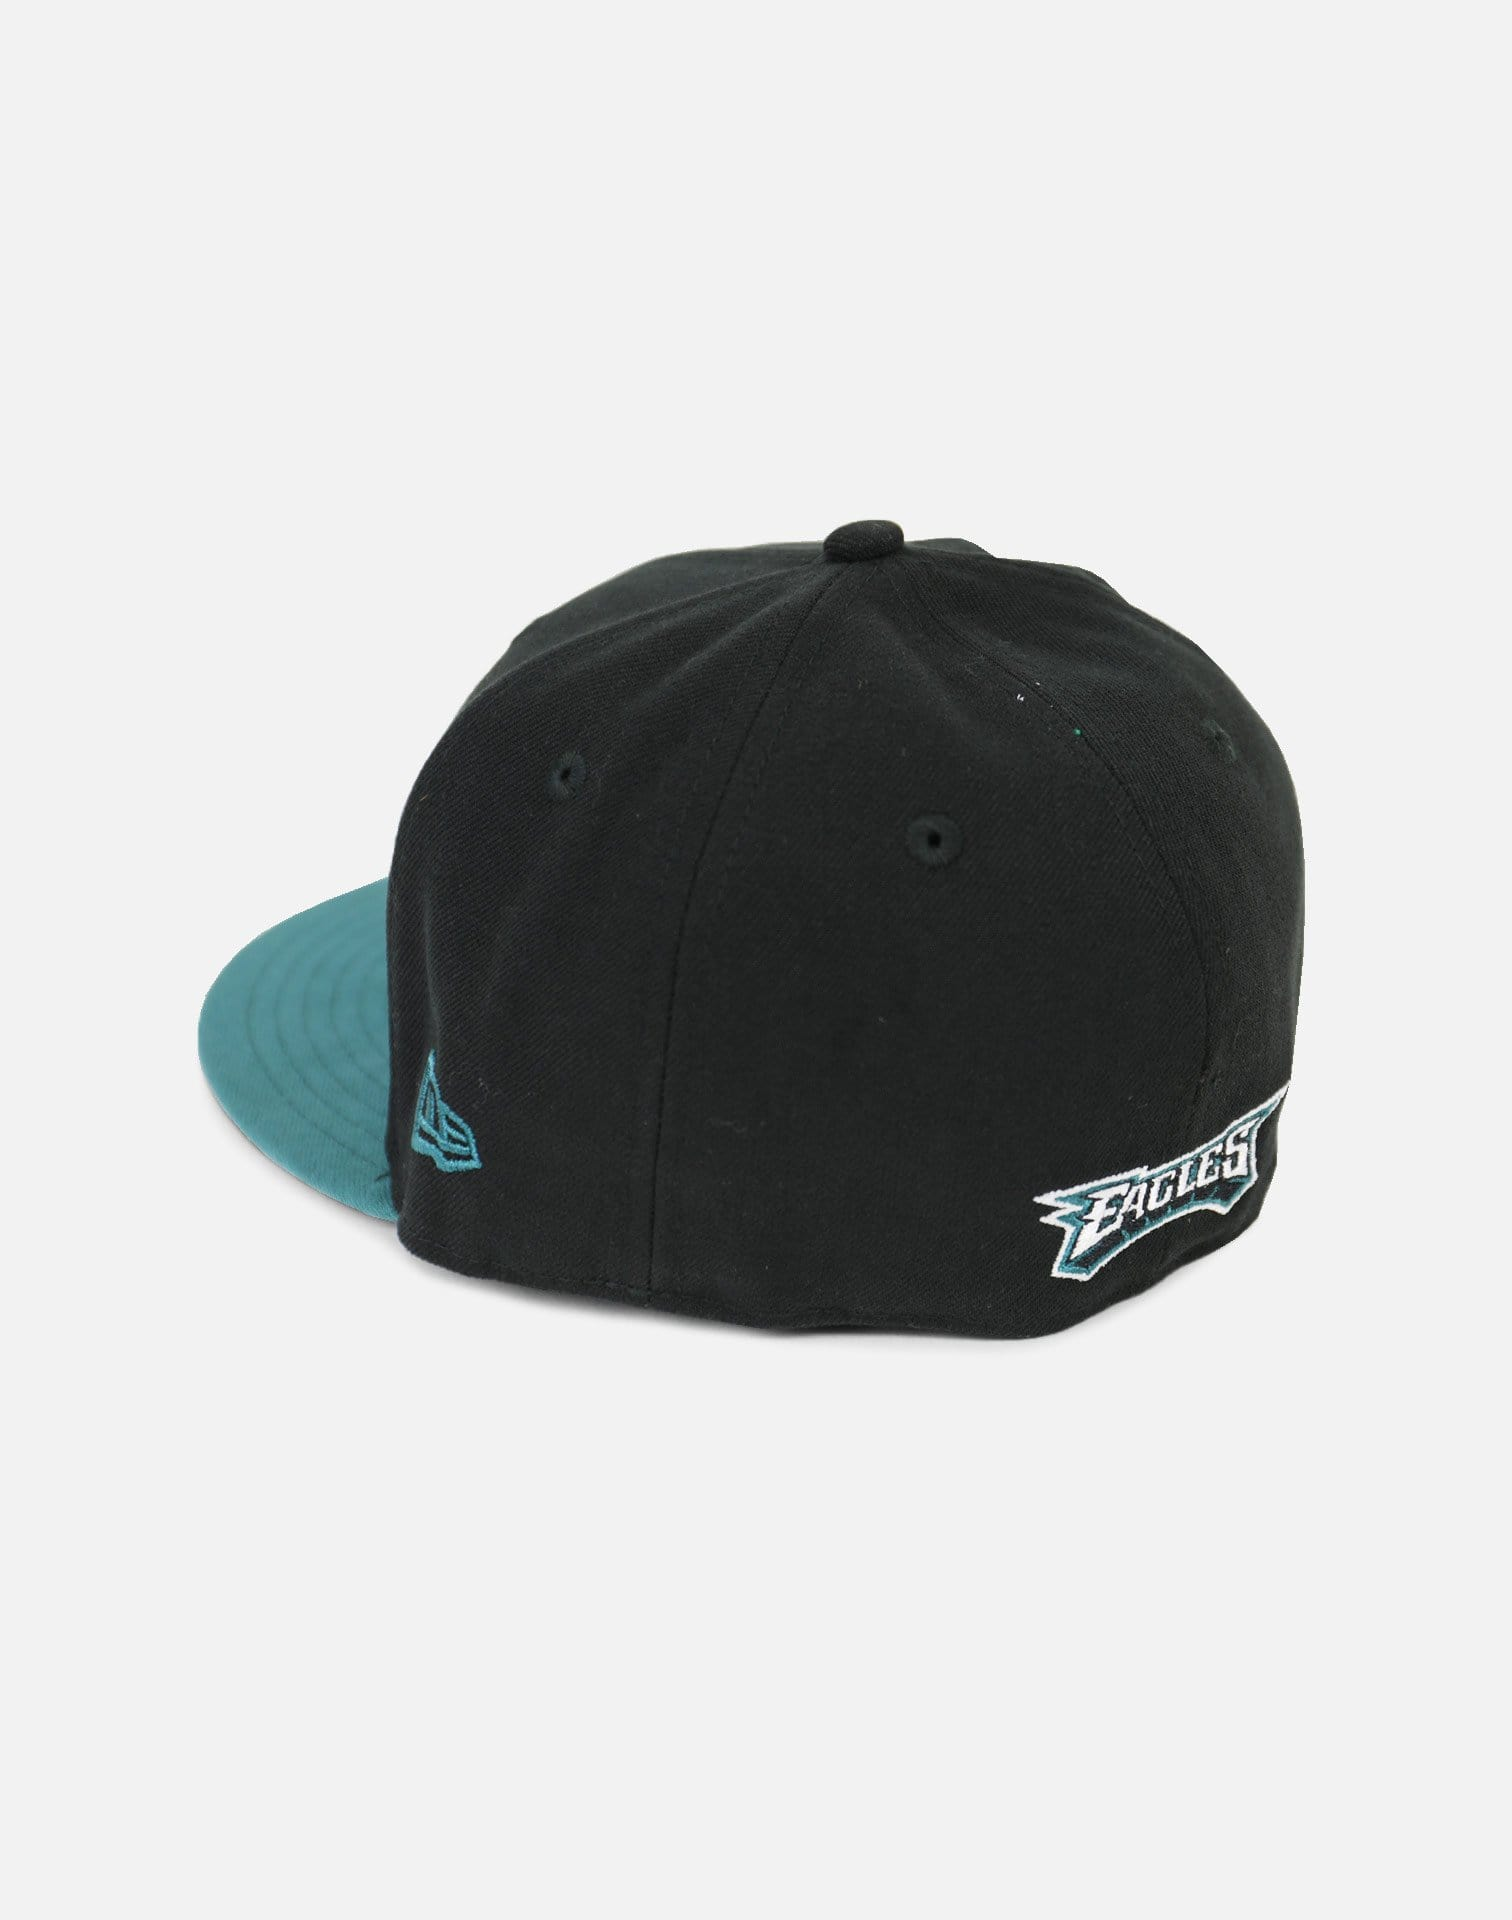 New Era Philadelphia Eagles Authentic Fitted Hat (Black/Green)